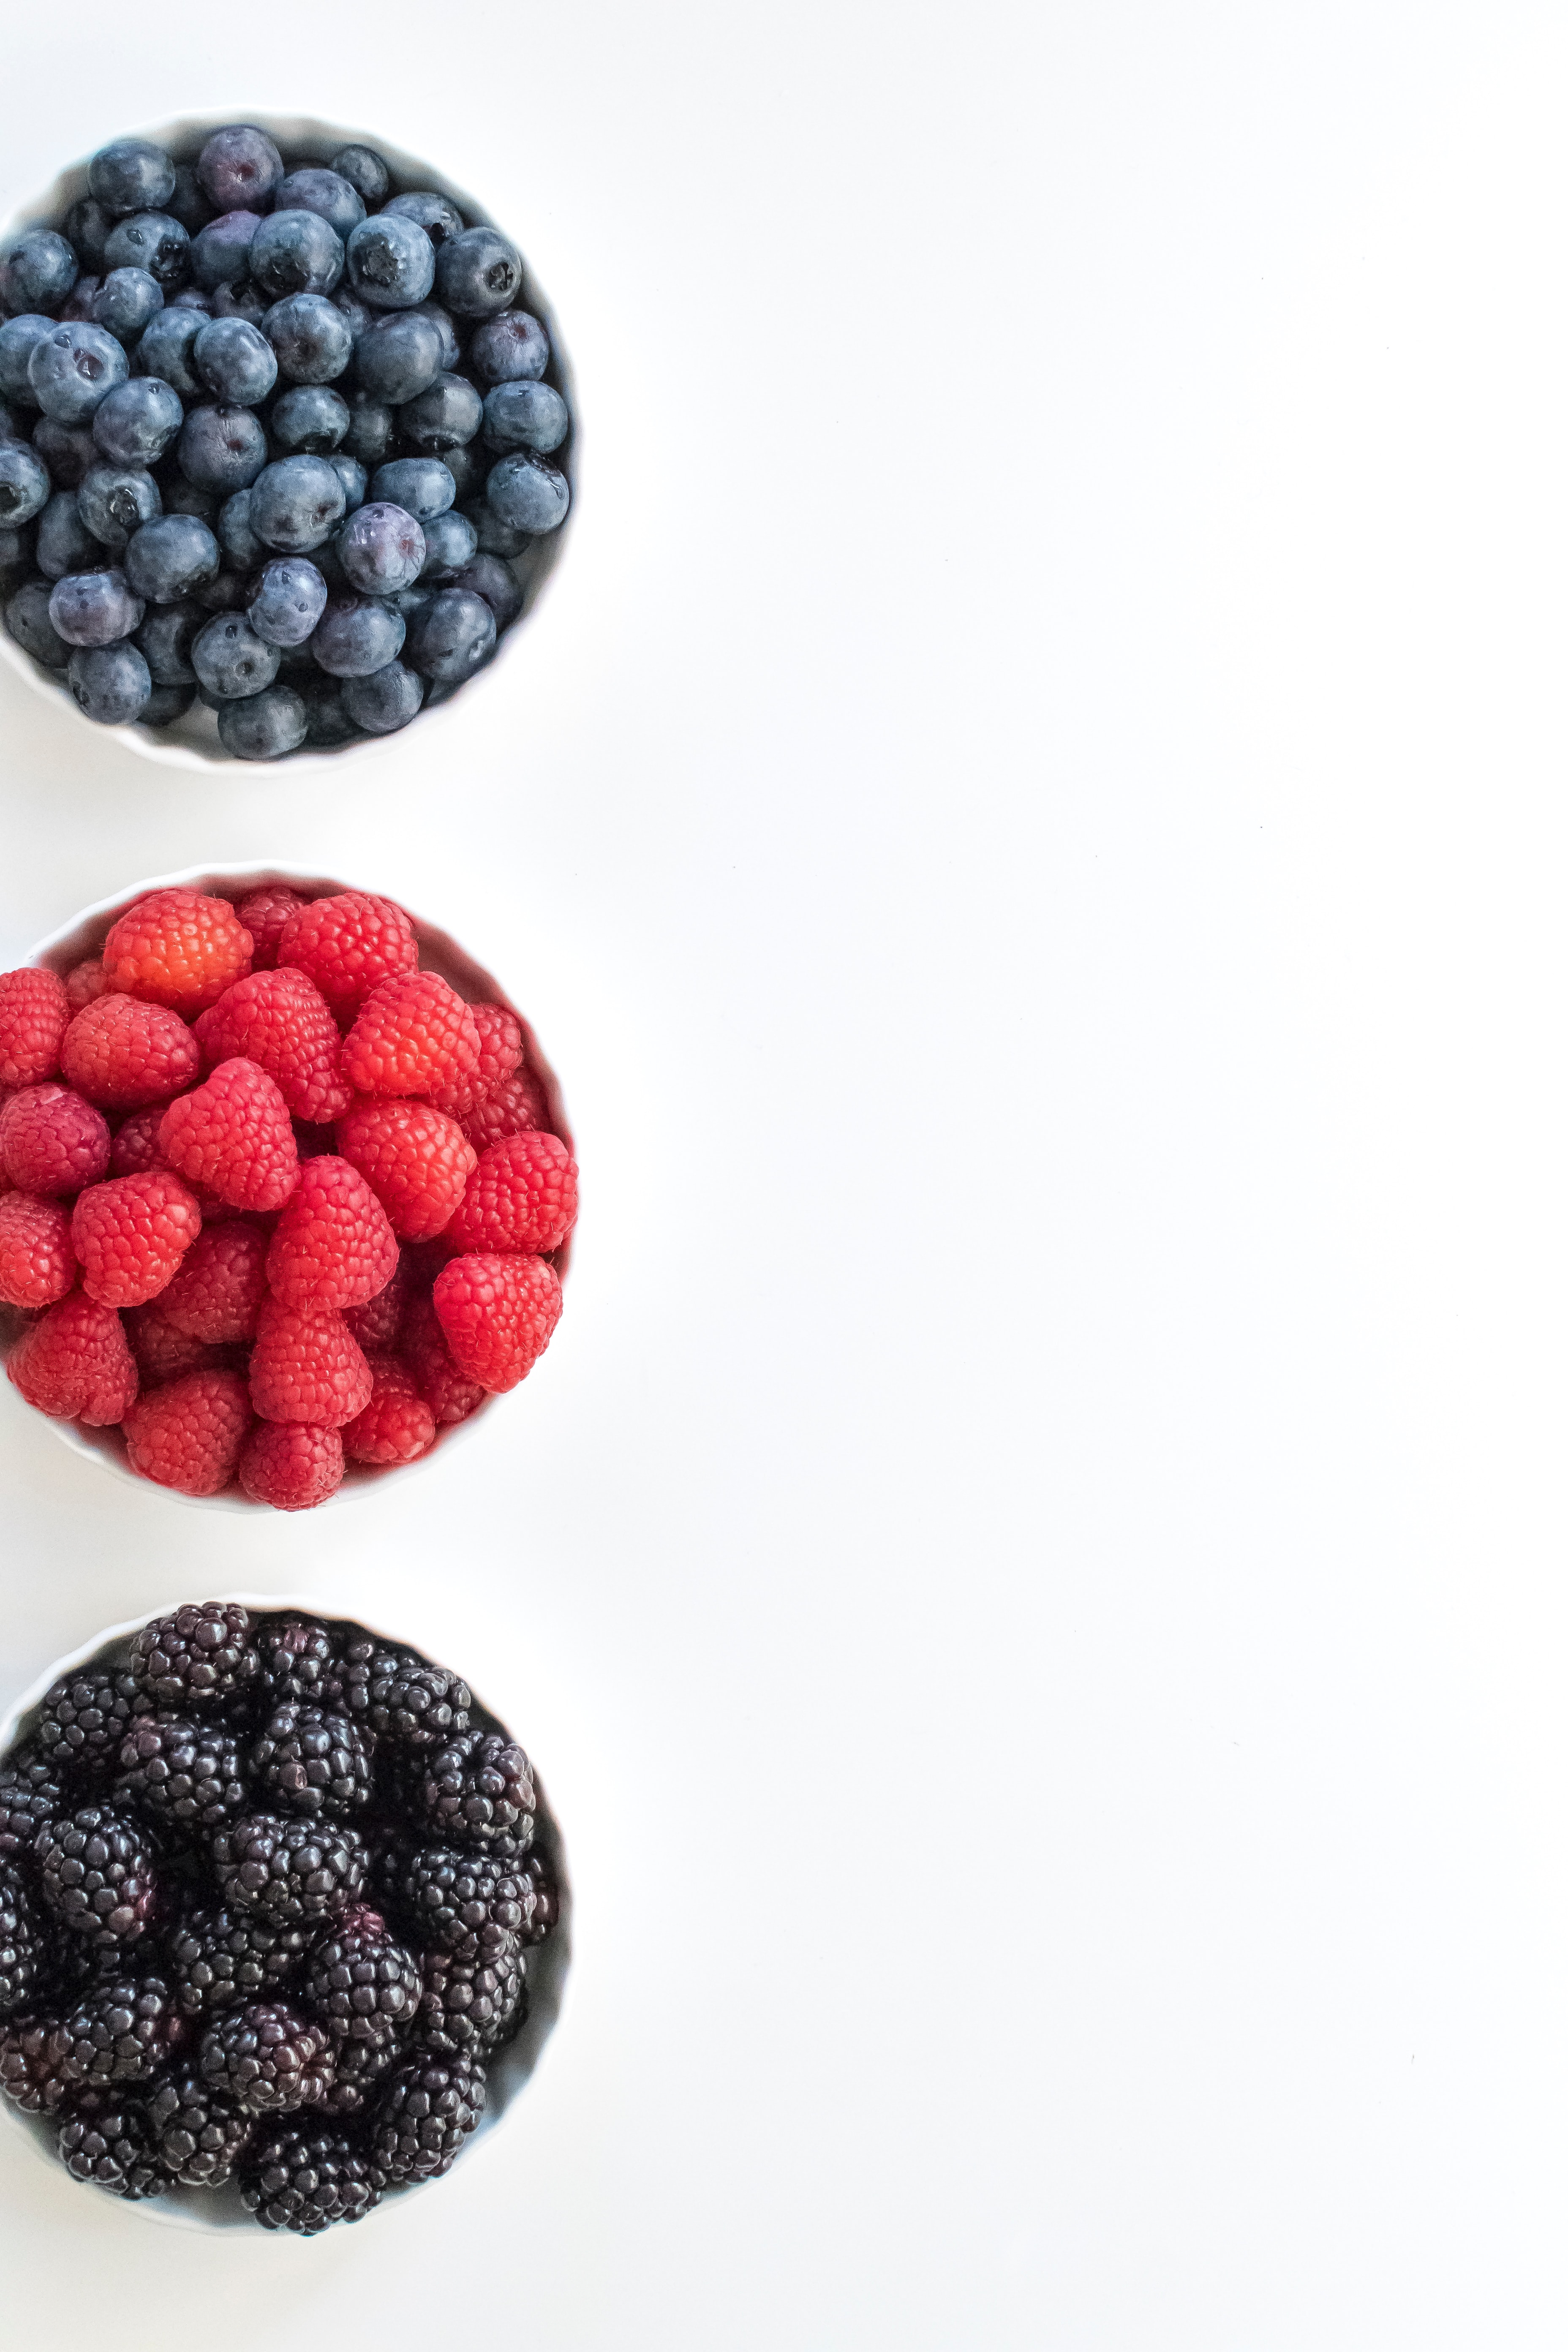 97990 download wallpaper Food, Raspberry, Bilberries, Berries, Blackberry screensavers and pictures for free